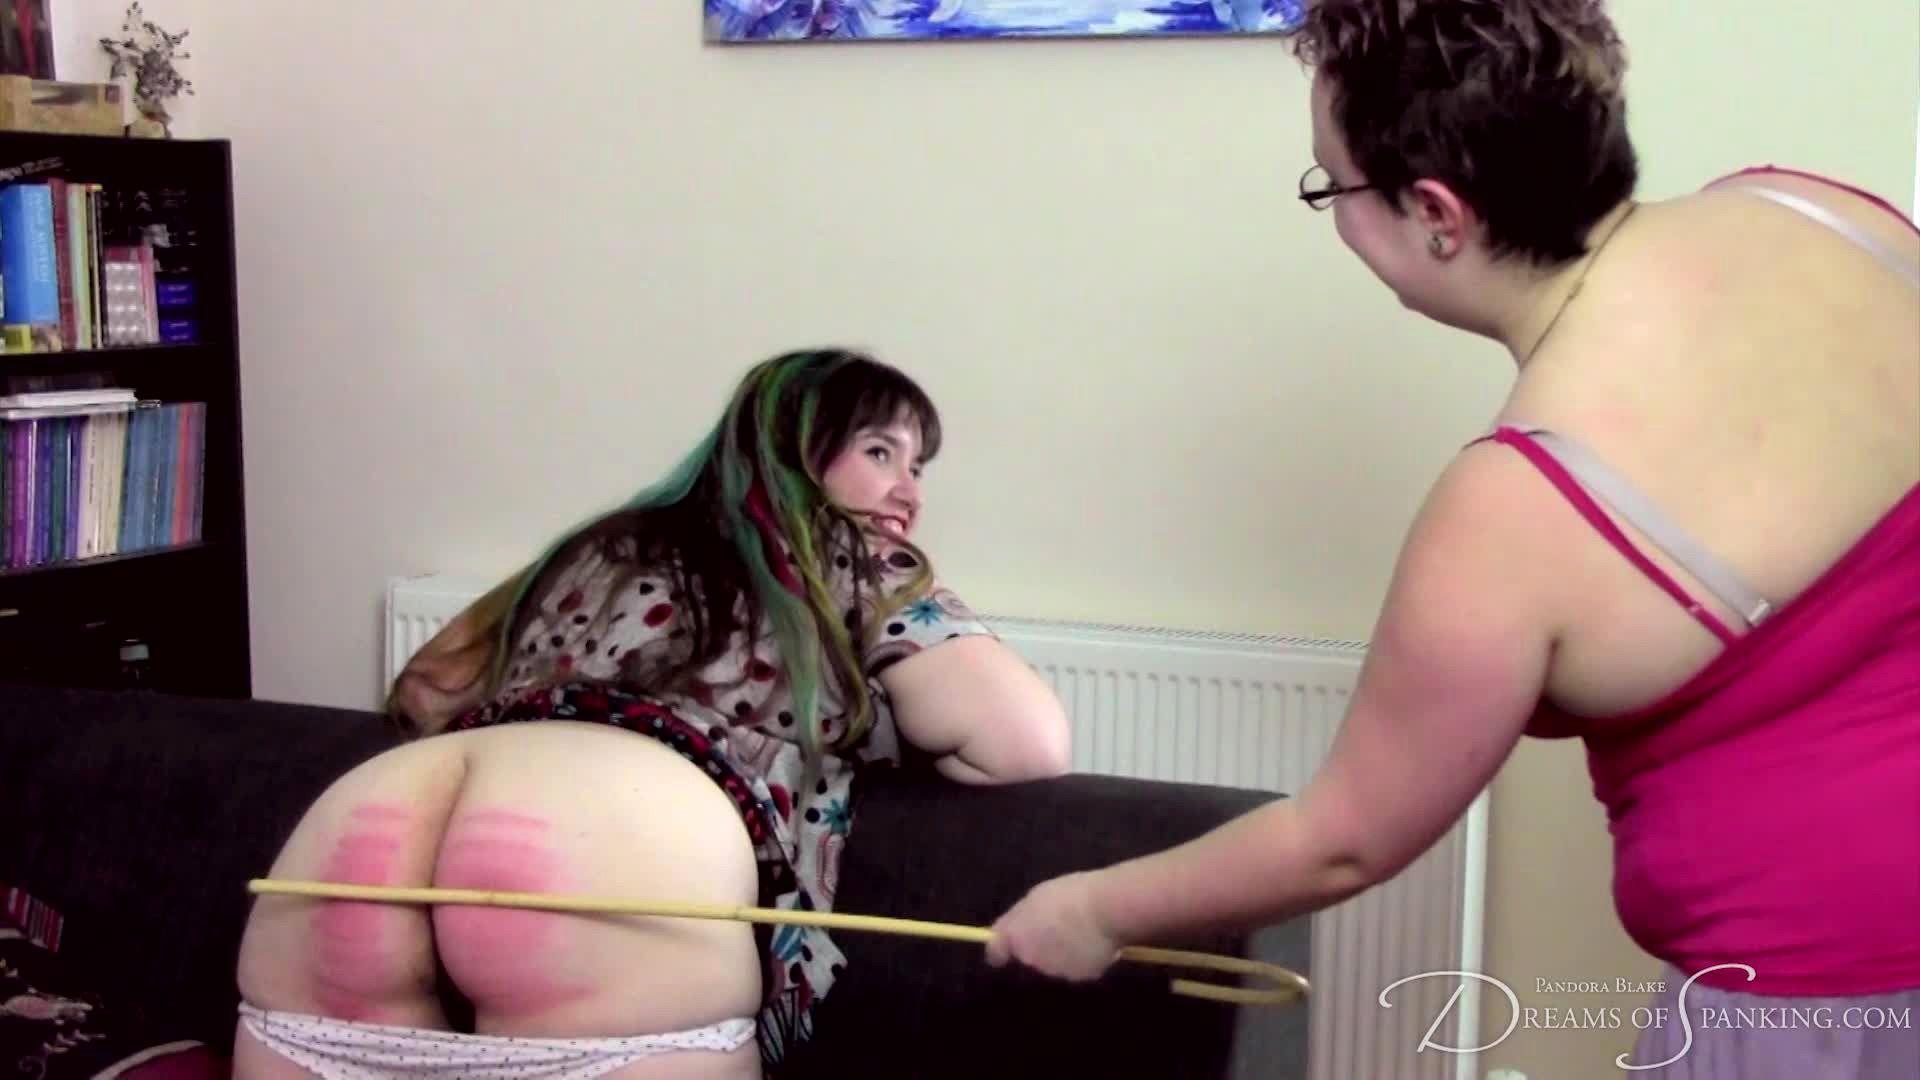 Free spanking video: Adele Haze takes a hard caning from Nimue Allen - Dreams of Spanking